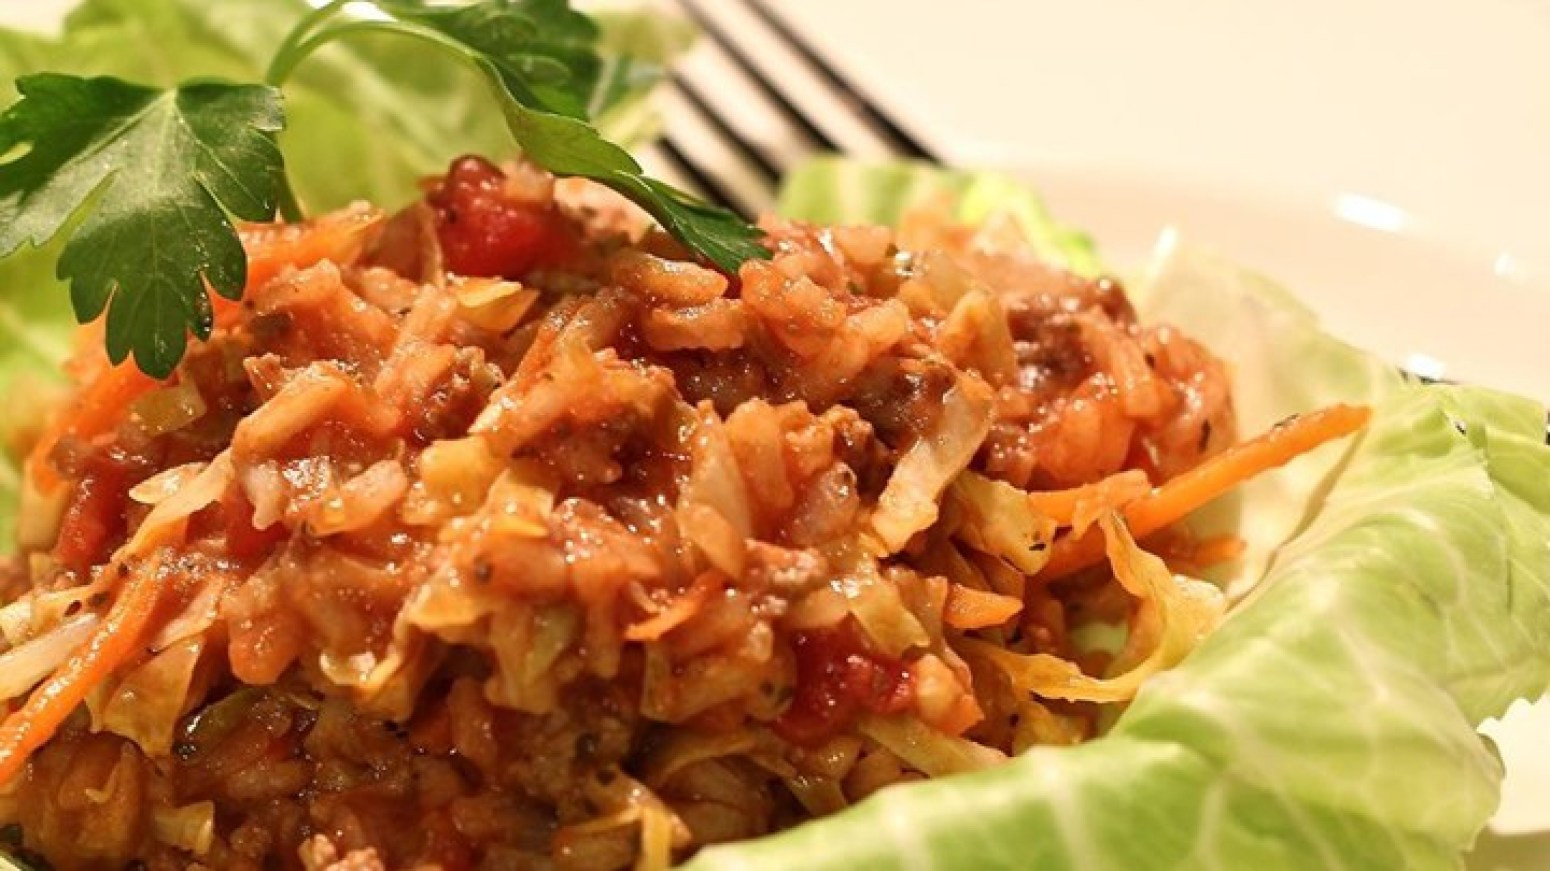 Cabbage Casserole Recipes  Golompke Beef and Cabbage Casserole Recipe